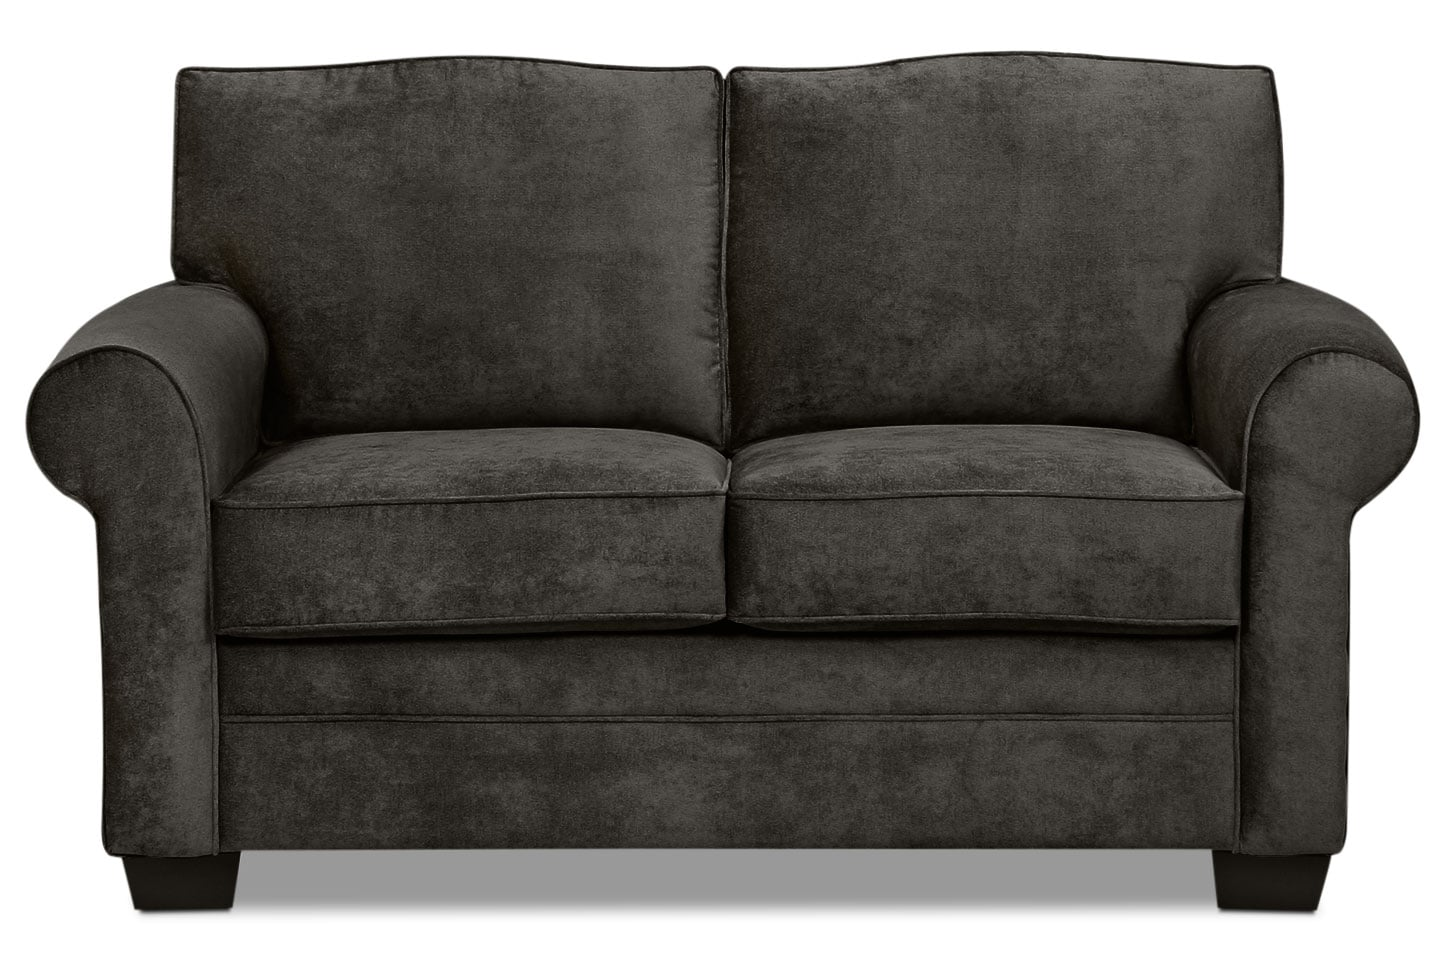 Designed2b Dov Chenille Sofa Lavish Charcoal The Brick